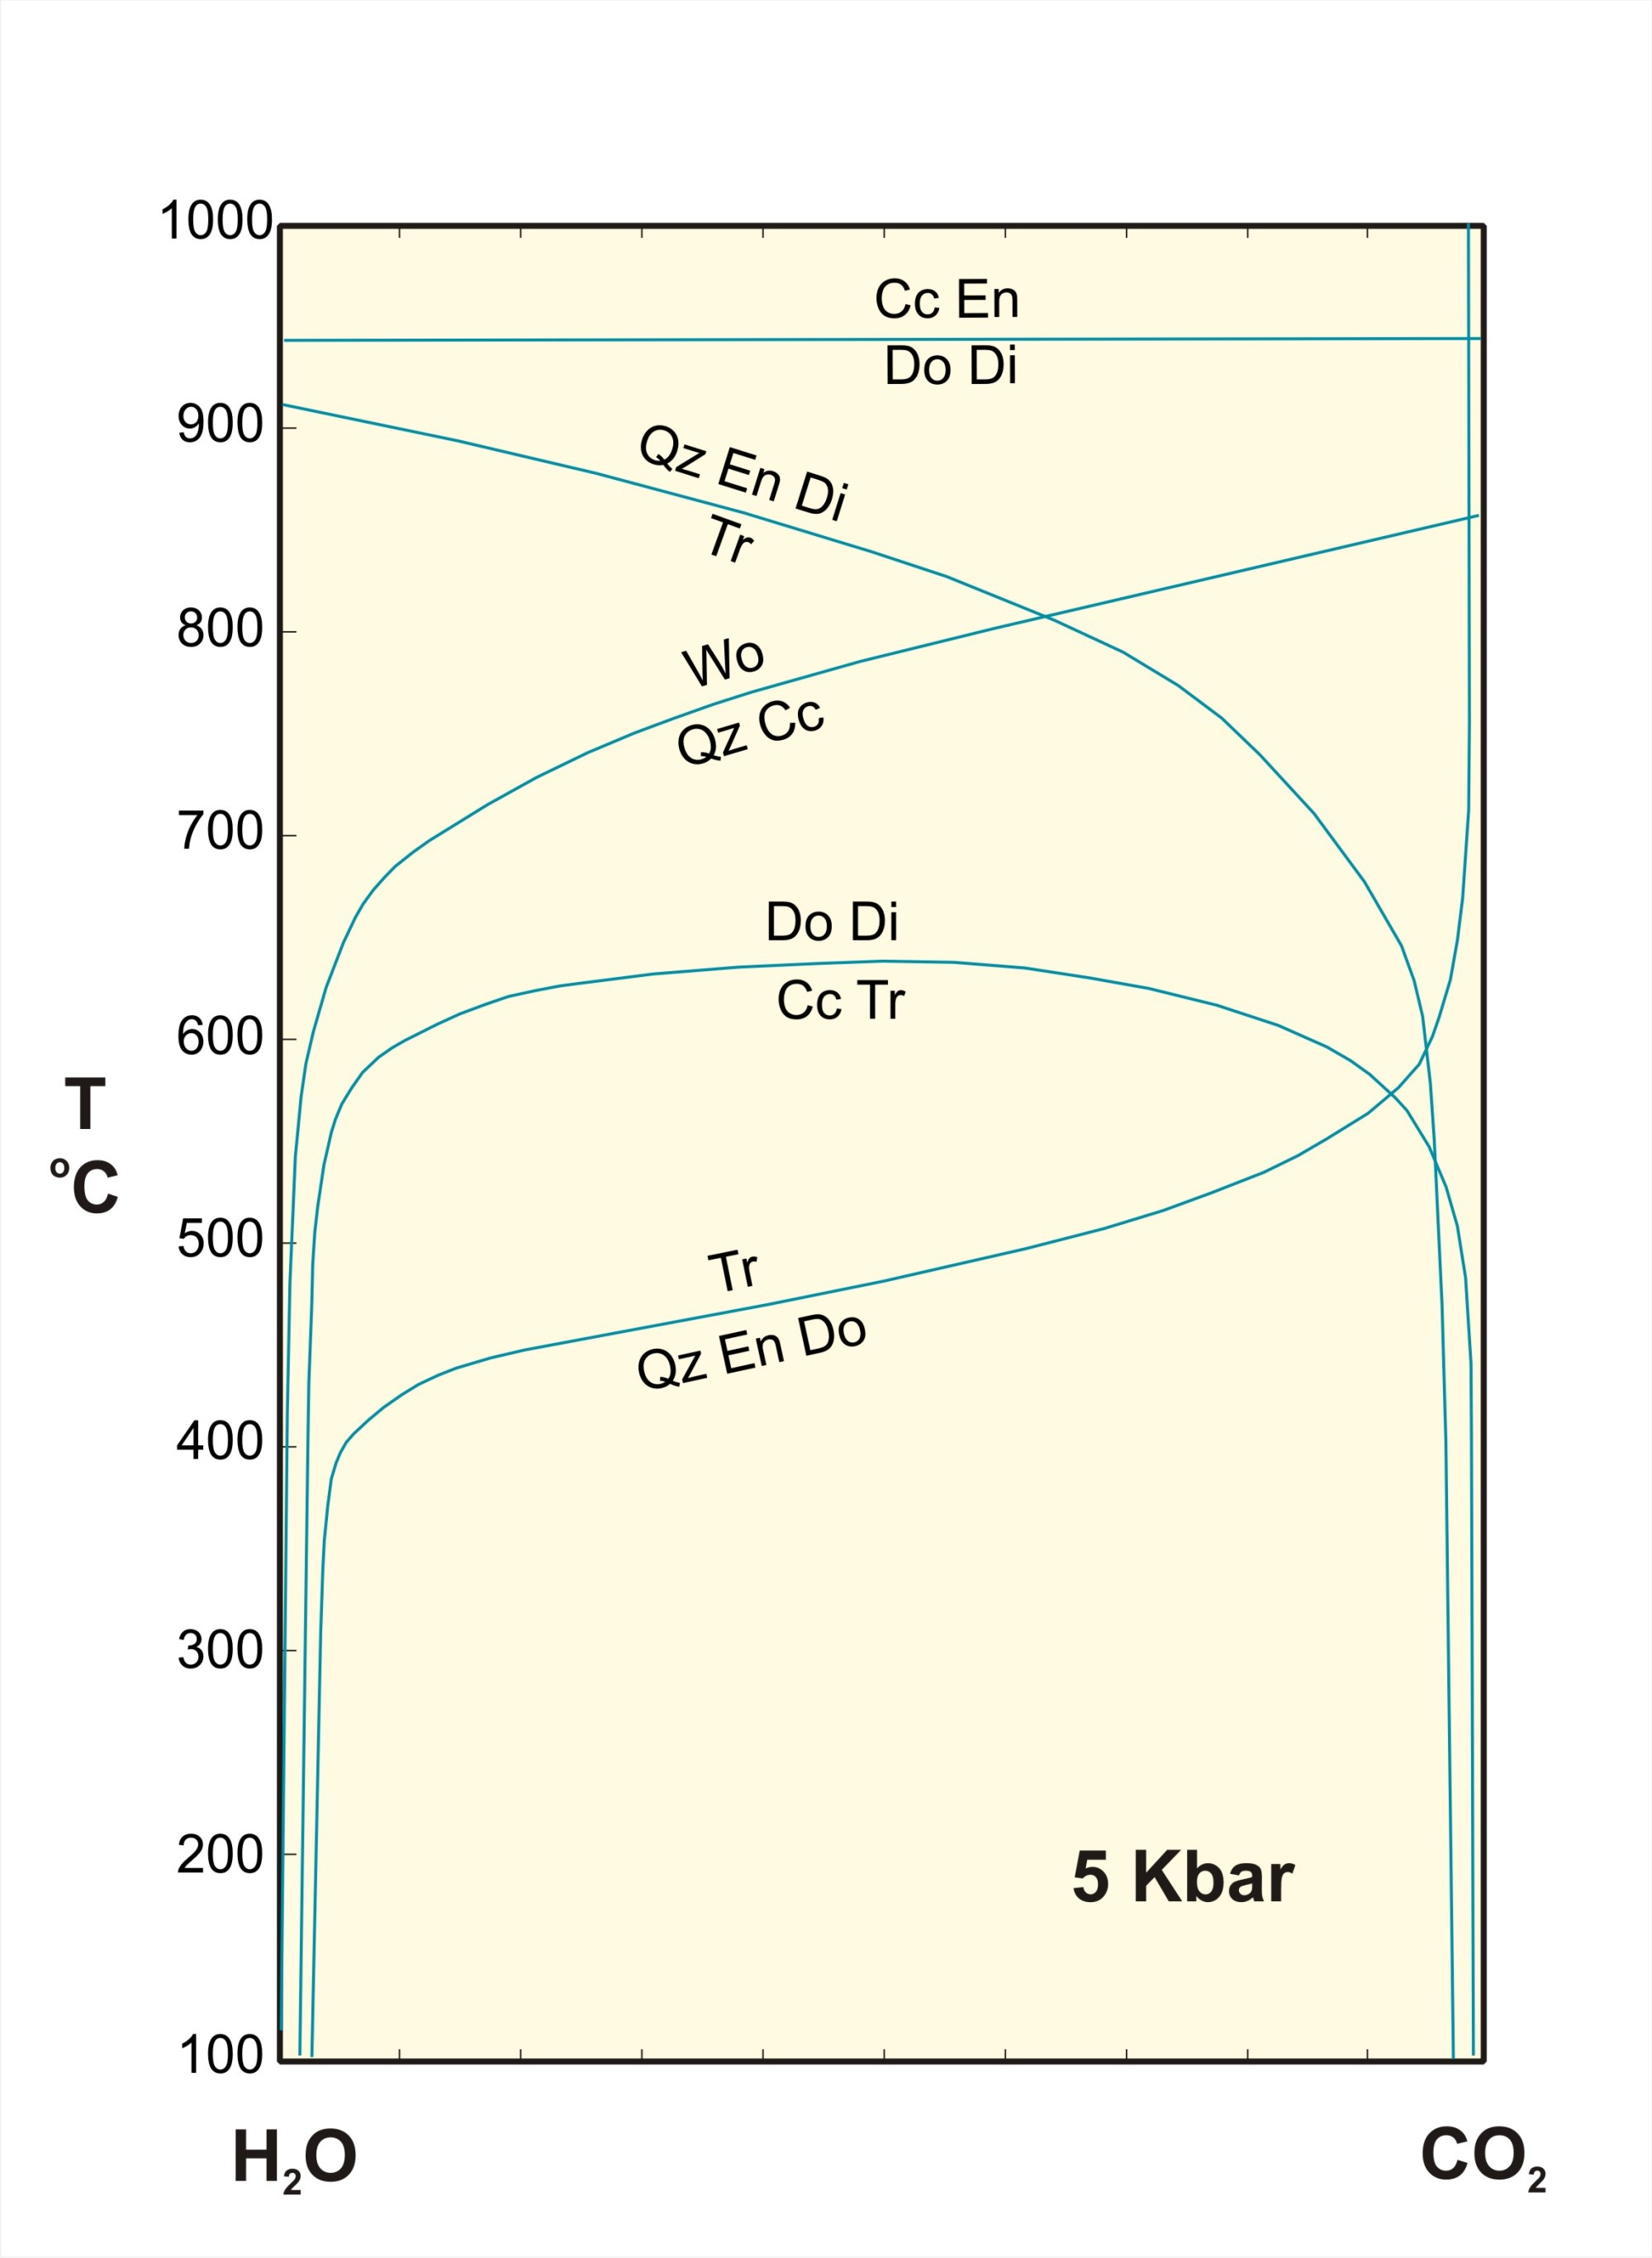 hight resolution of some reactions in the system cao mgo sio2 h2o co2